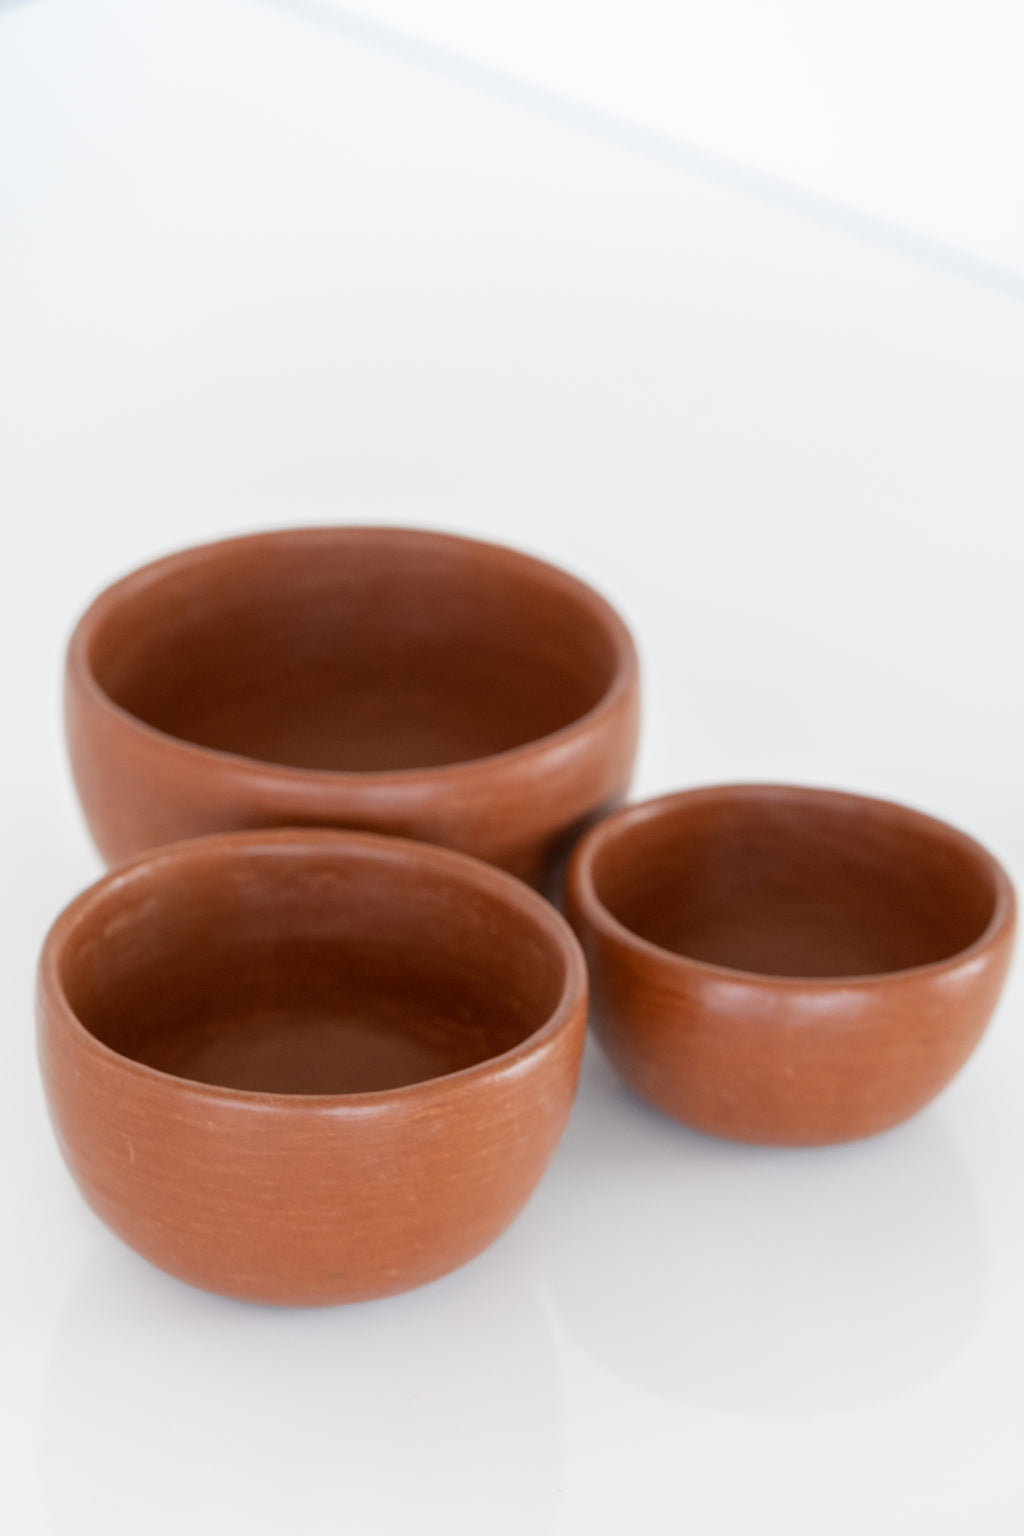 SMALL ROUND NESTING BOWLS